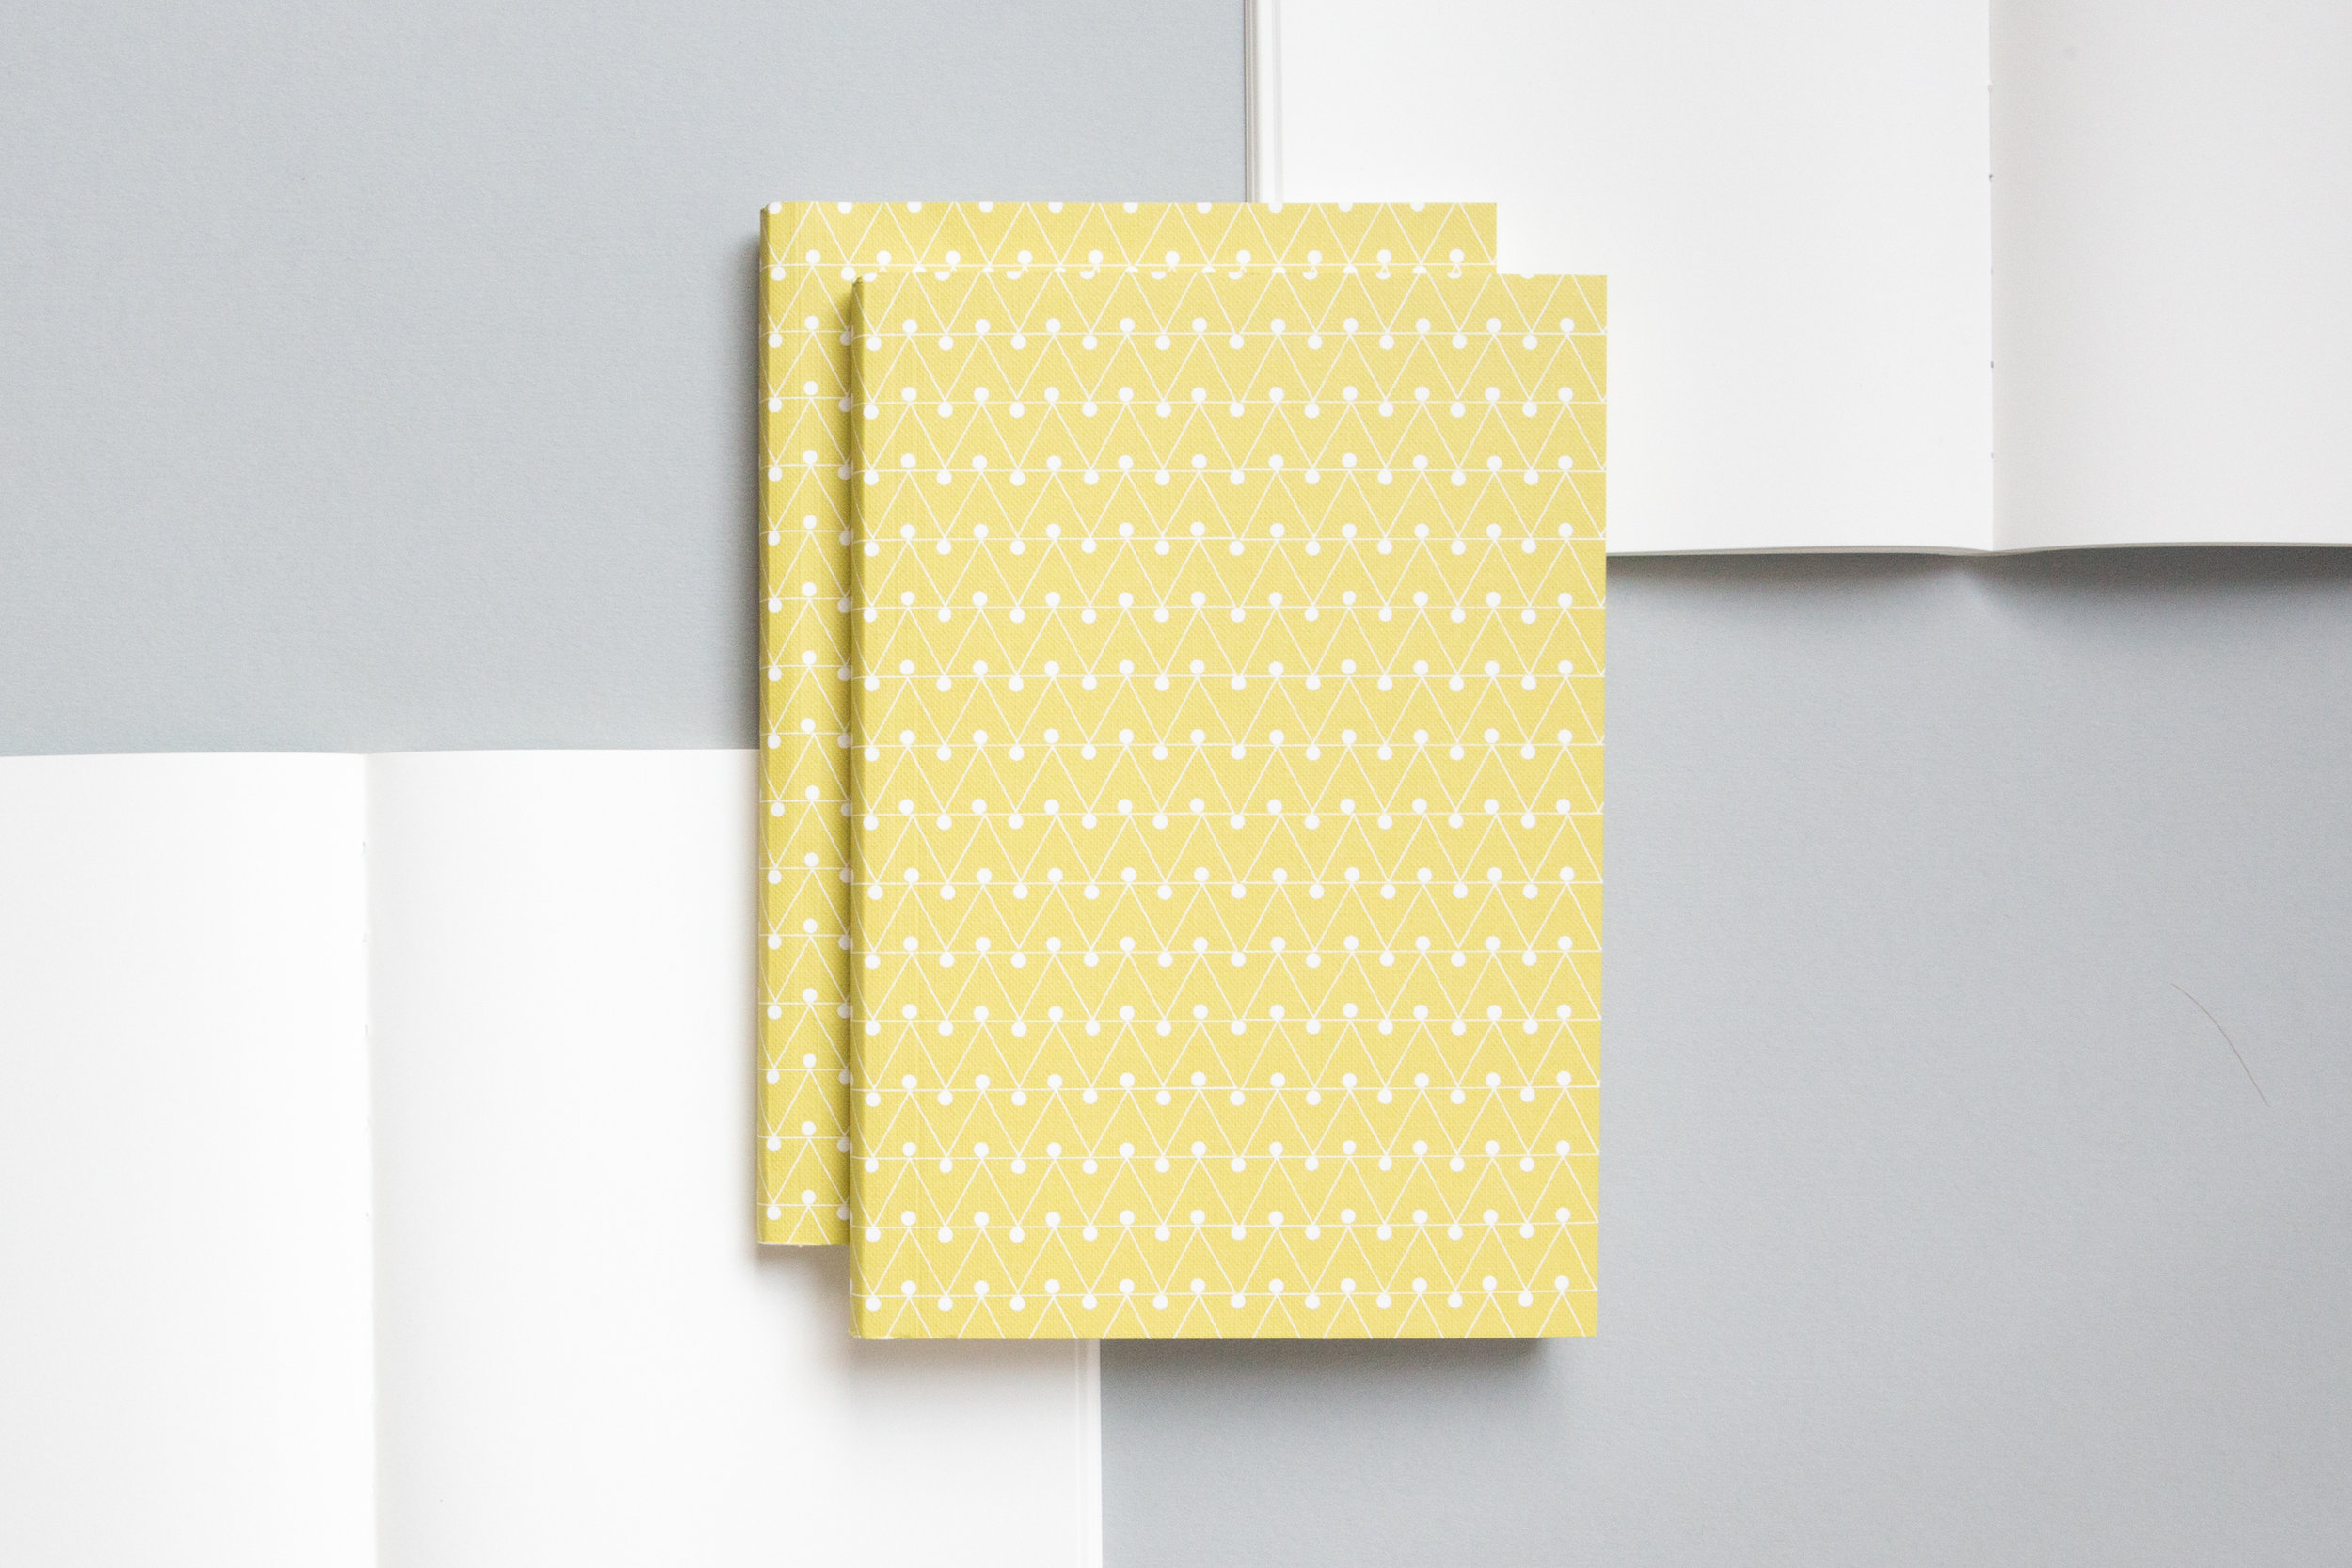 A5008ML - Layflat Notebook, Dash Print in Leaf Green and Ruled, ola.jpg